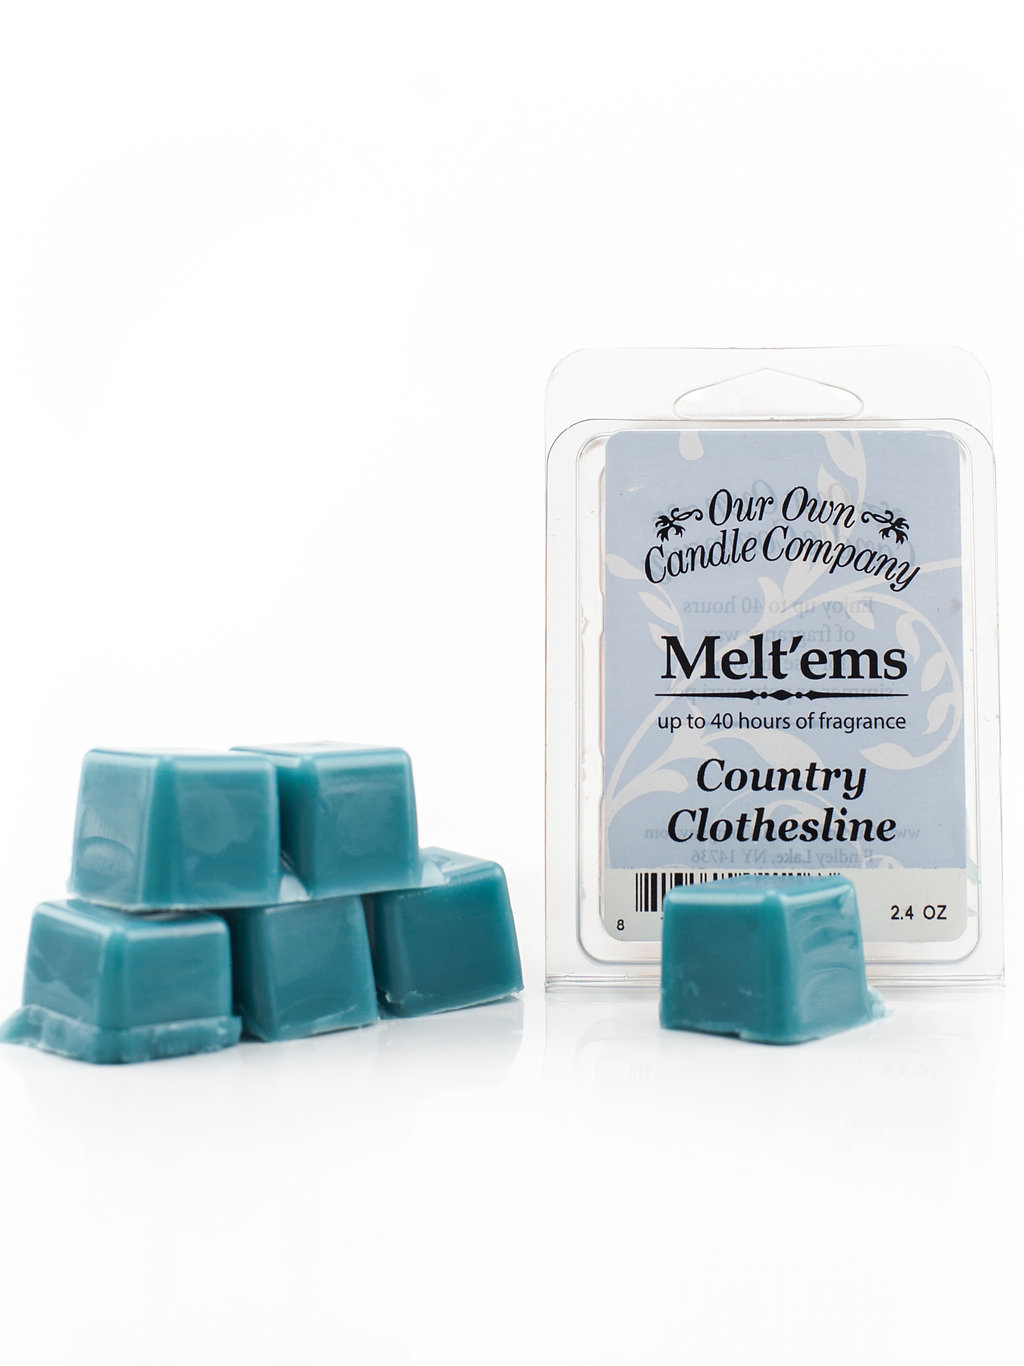 COUNTRY CLOTHESLINE MELT 6 CUBE 2.4 OZ UPC# 813542021163